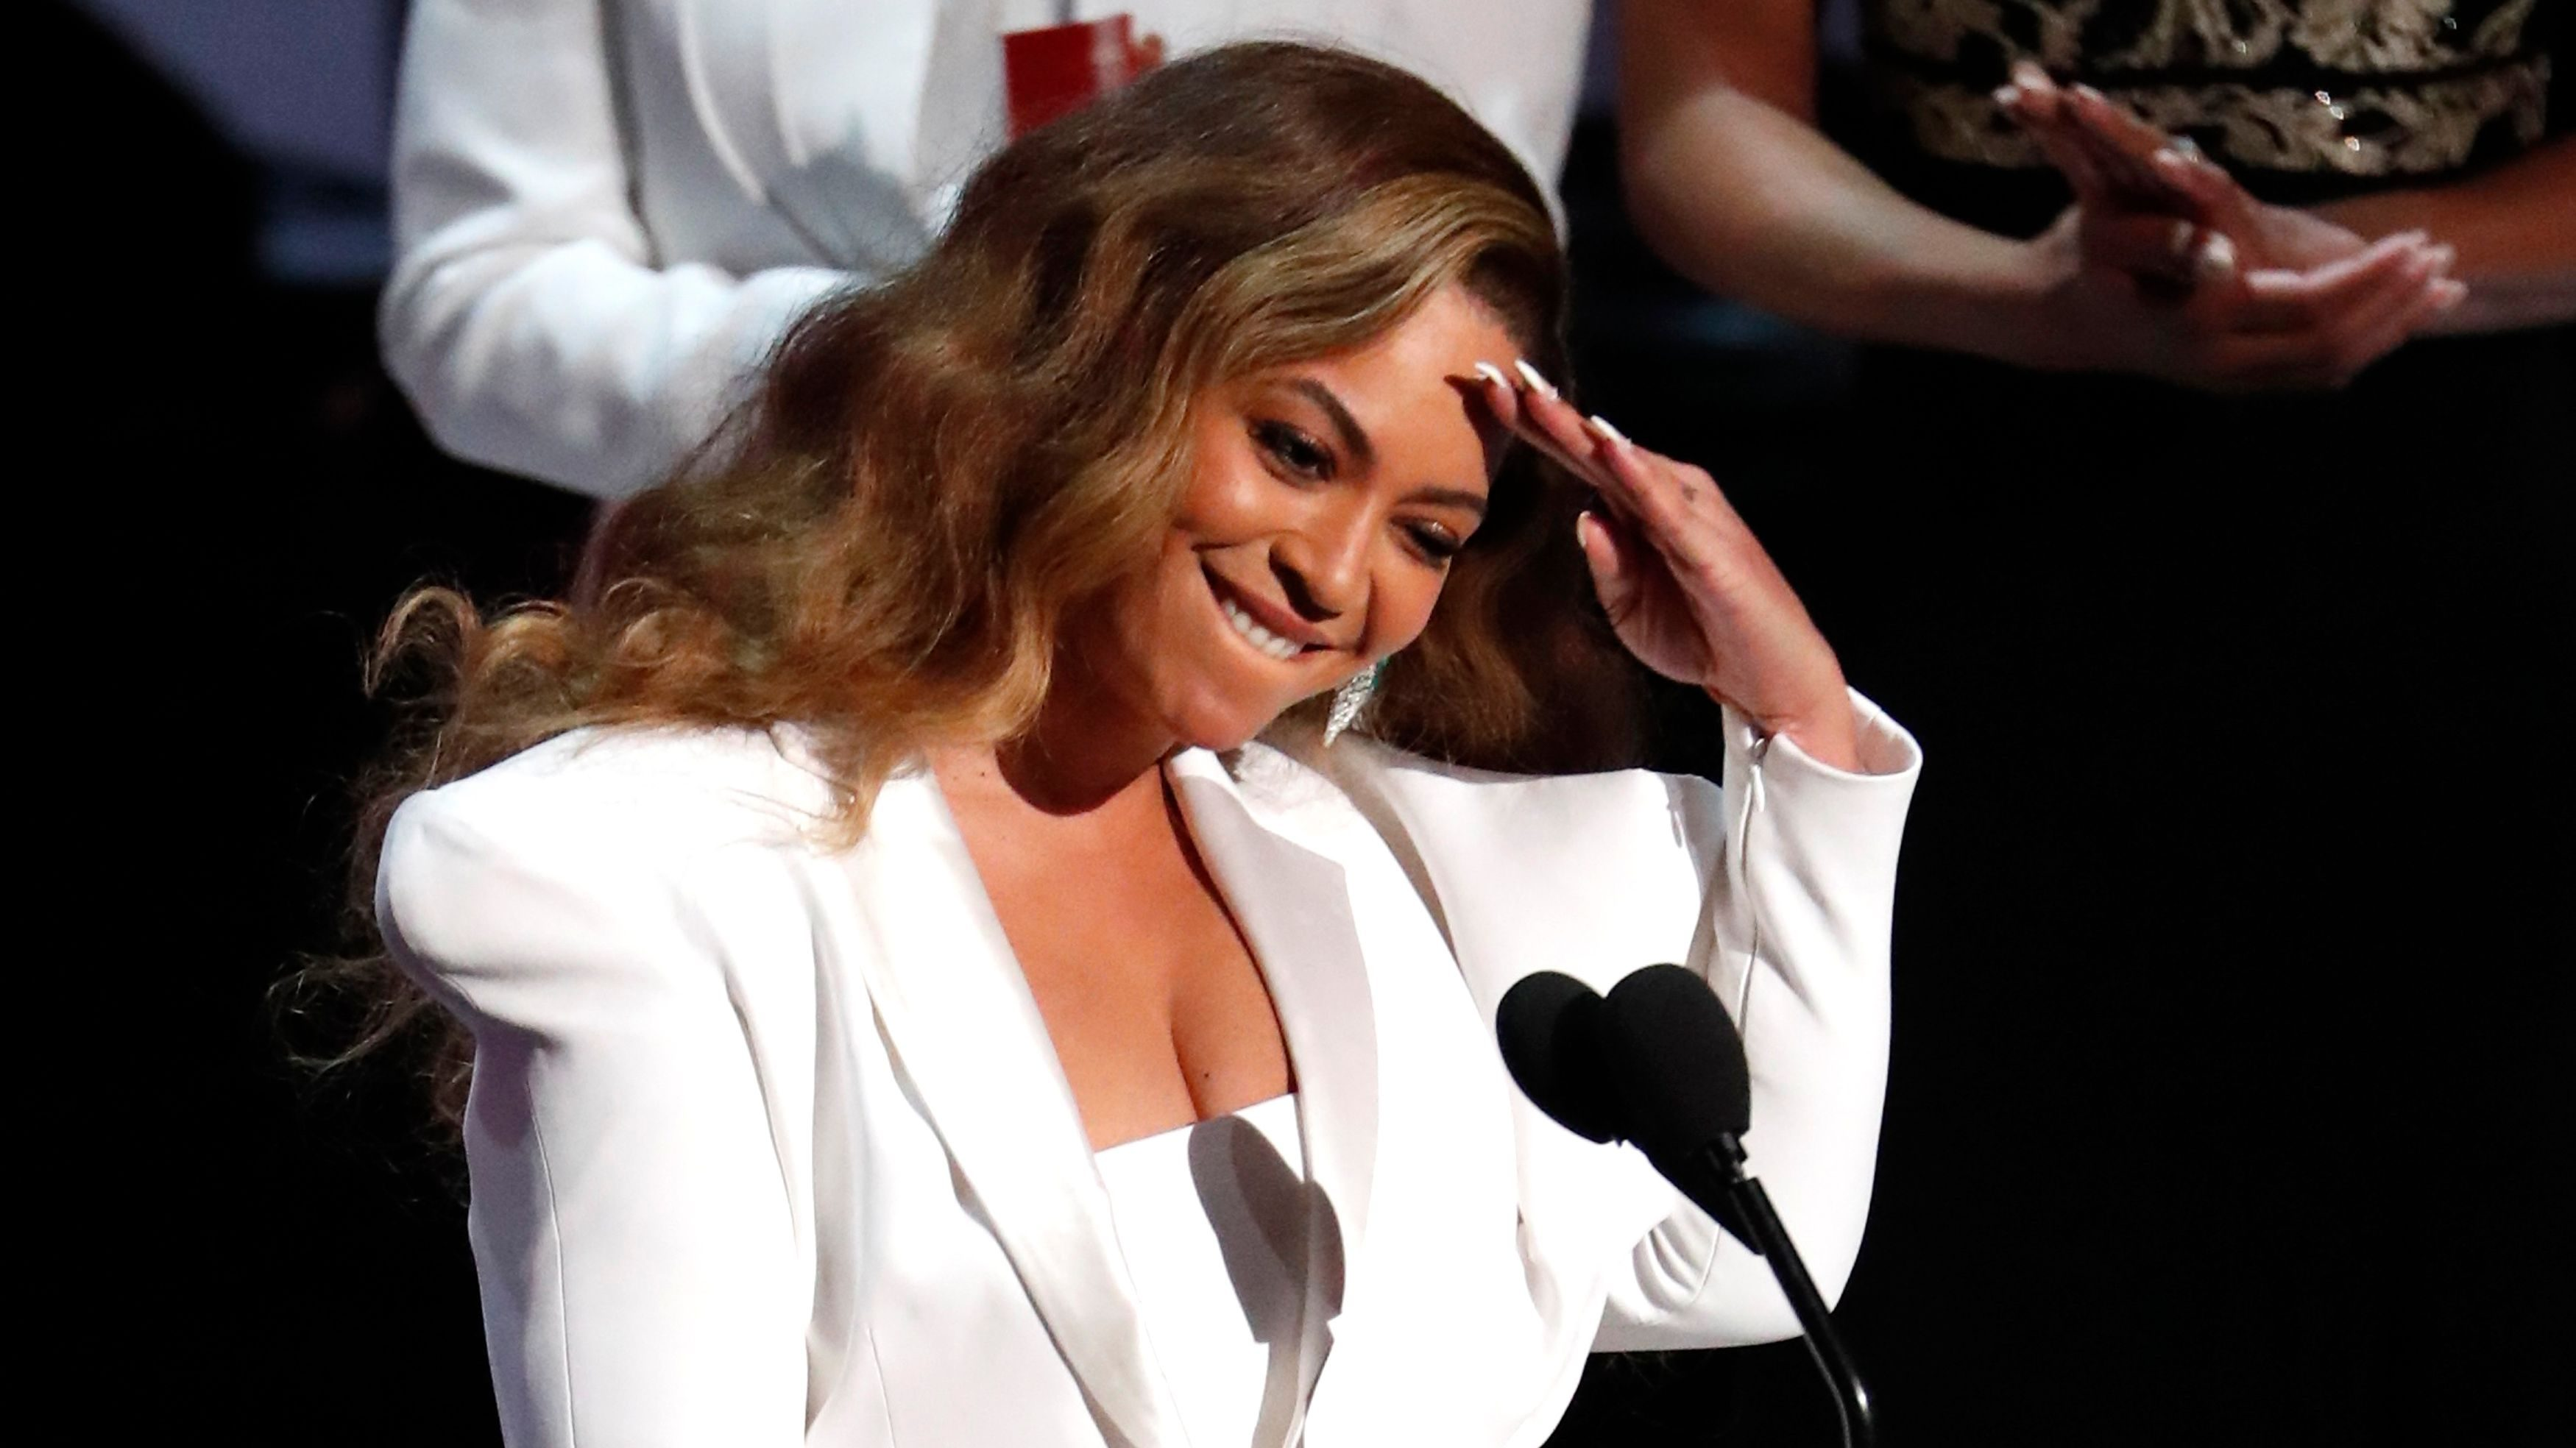 50th NAACP Image Awards - Show - Los Angeles, California, U.S., March 30, 2019 - Beyonce reacts after winning the entertainer of the year award. REUTERS/Mario Anzuoni - HP1EF3V0ALJ39